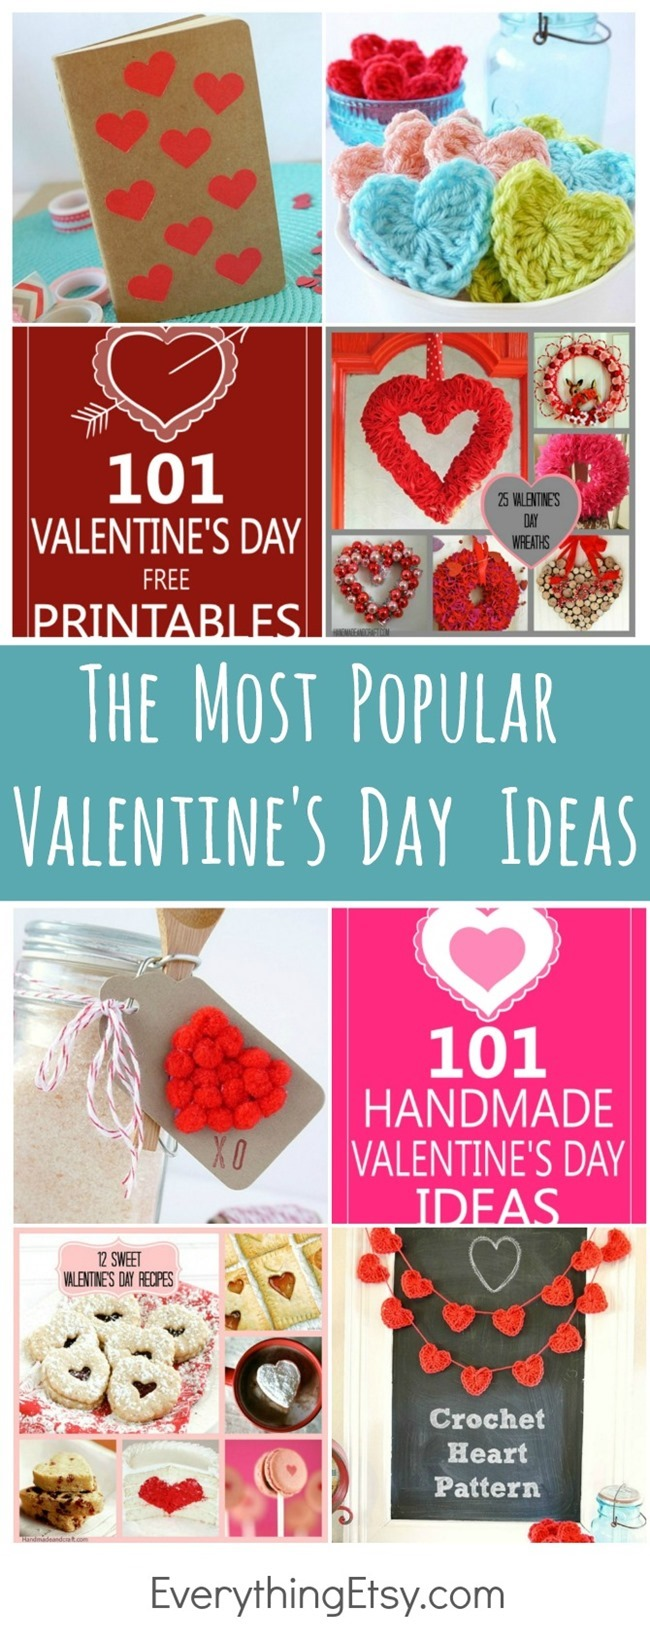 The-Most-Popular-Valentines-Day-Ideas-and-Printables-on-EverythingEtsy.com_thumb